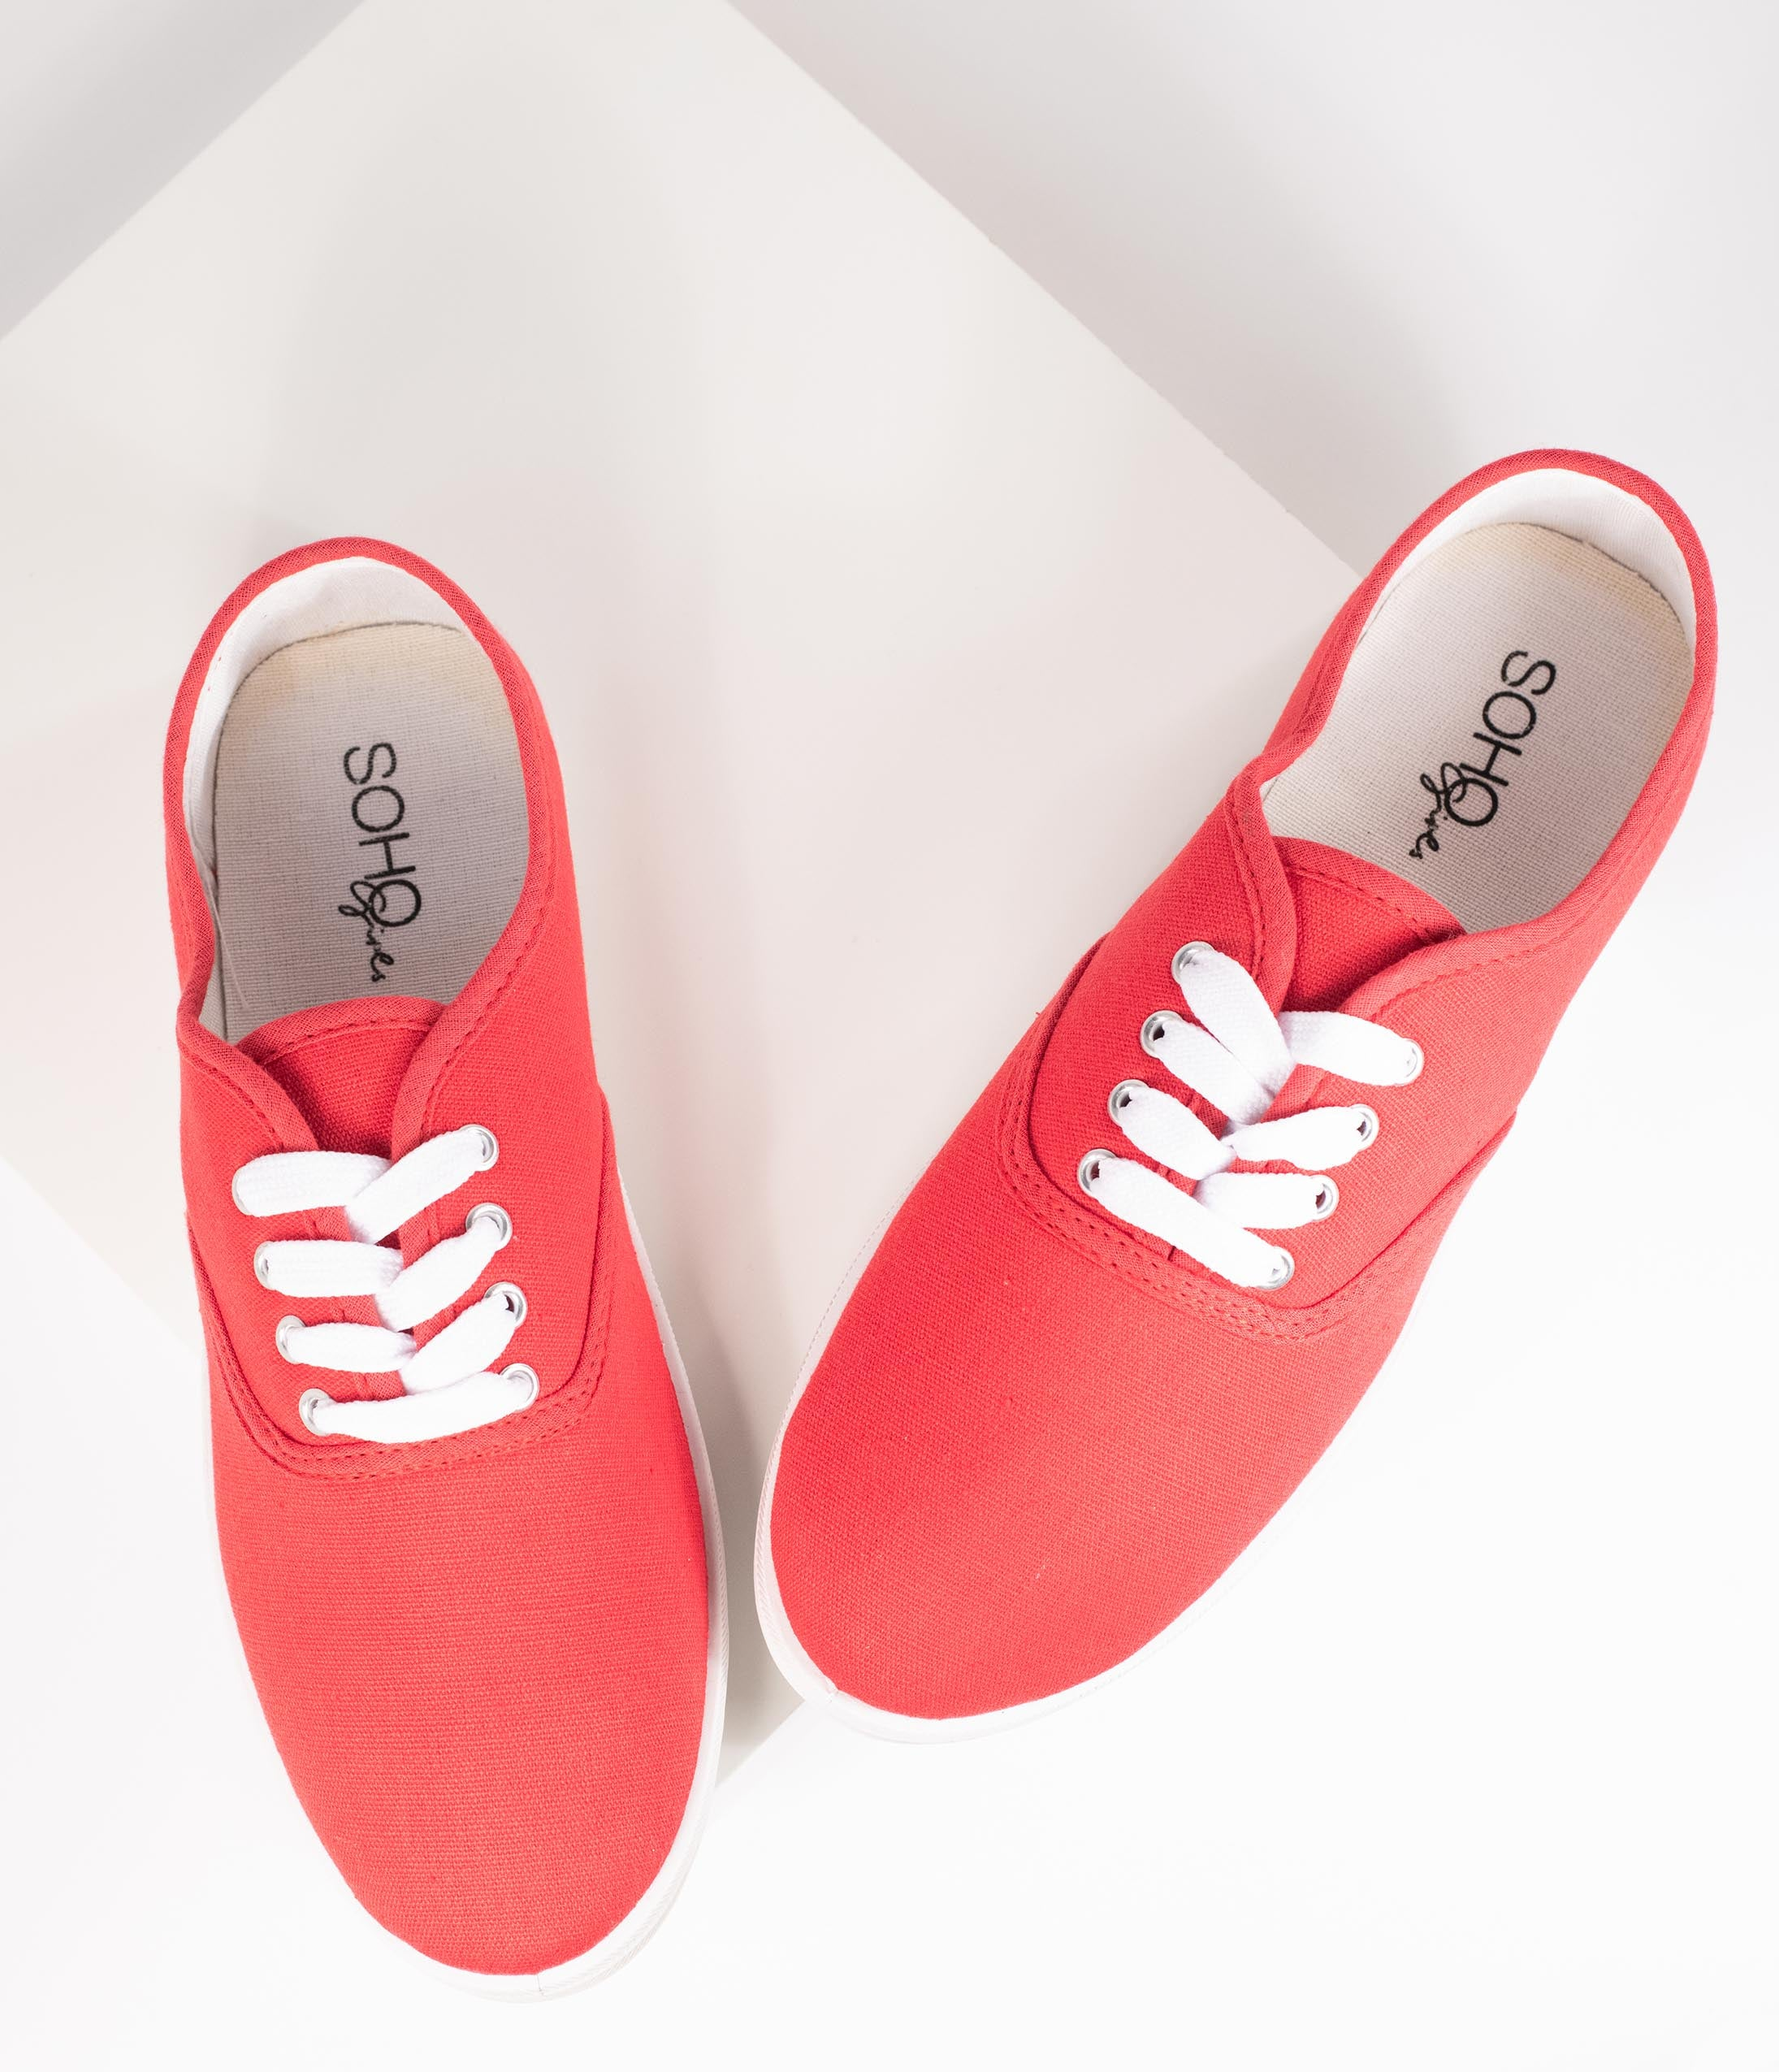 1950s Style Shoes | Heels, Flats, Boots Red Canvas Ladies Sneakers $18.00 AT vintagedancer.com